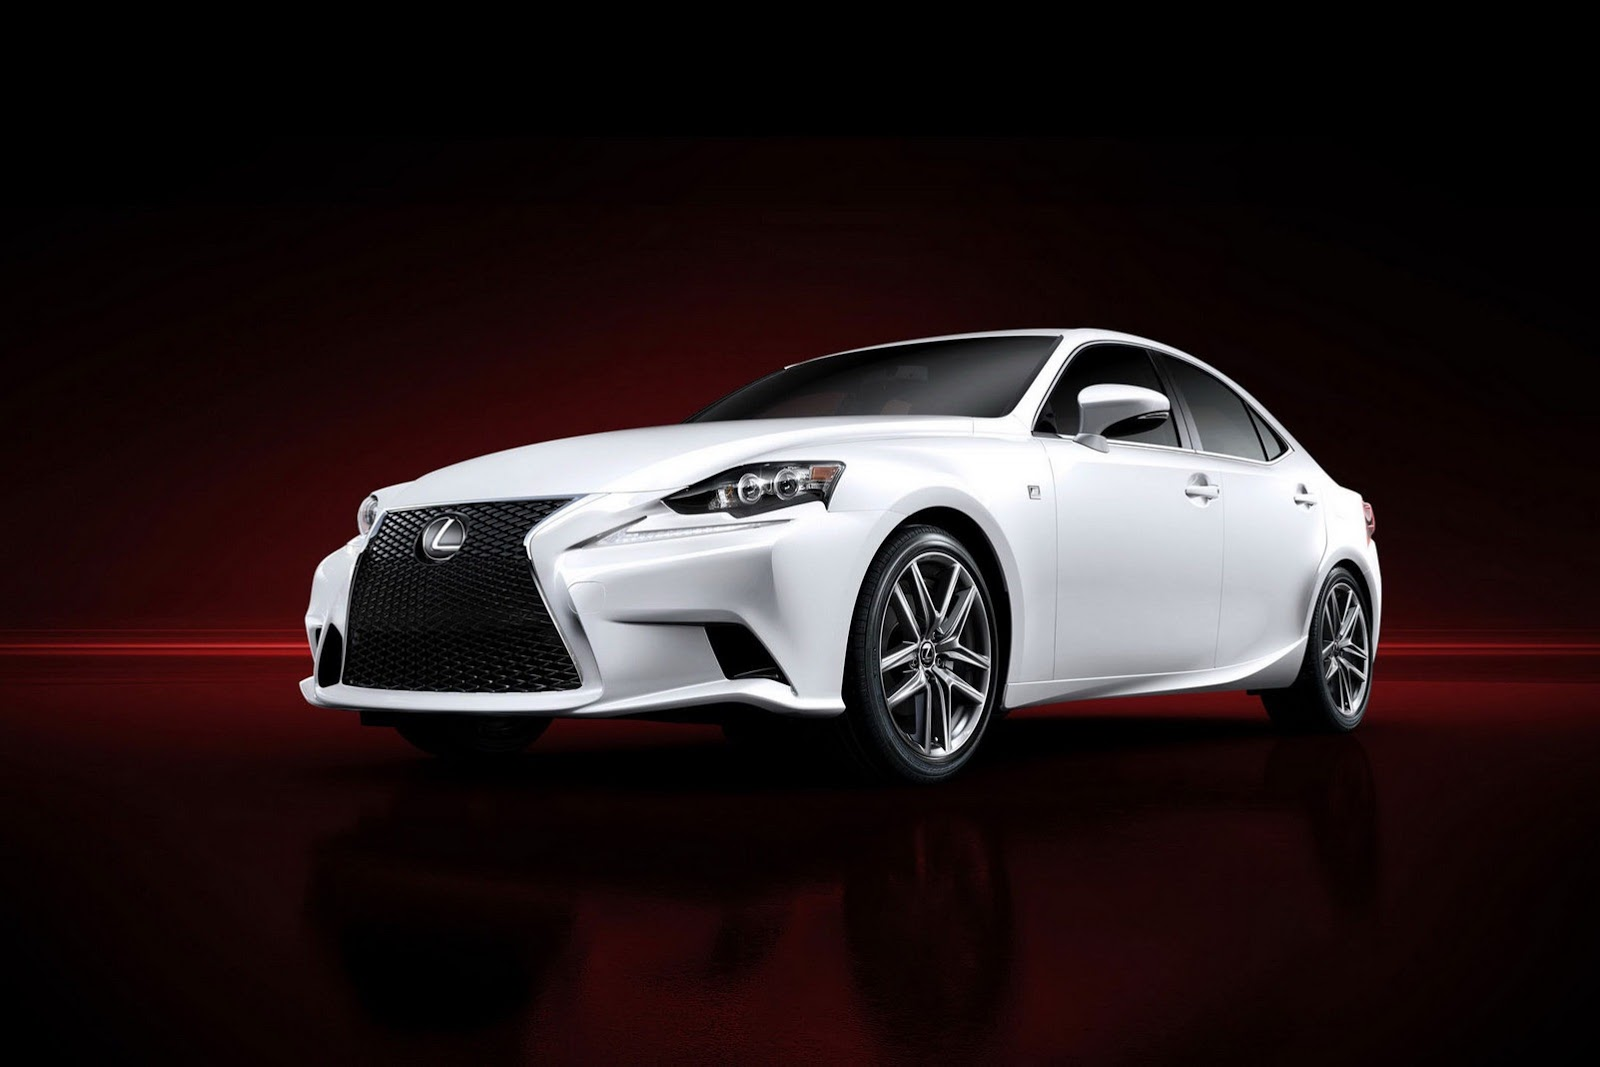 https://s1.cdn.autoevolution.com/images/news/2014-lexus-is-us-pricing-announced-photo-gallery-58676_1.jpg